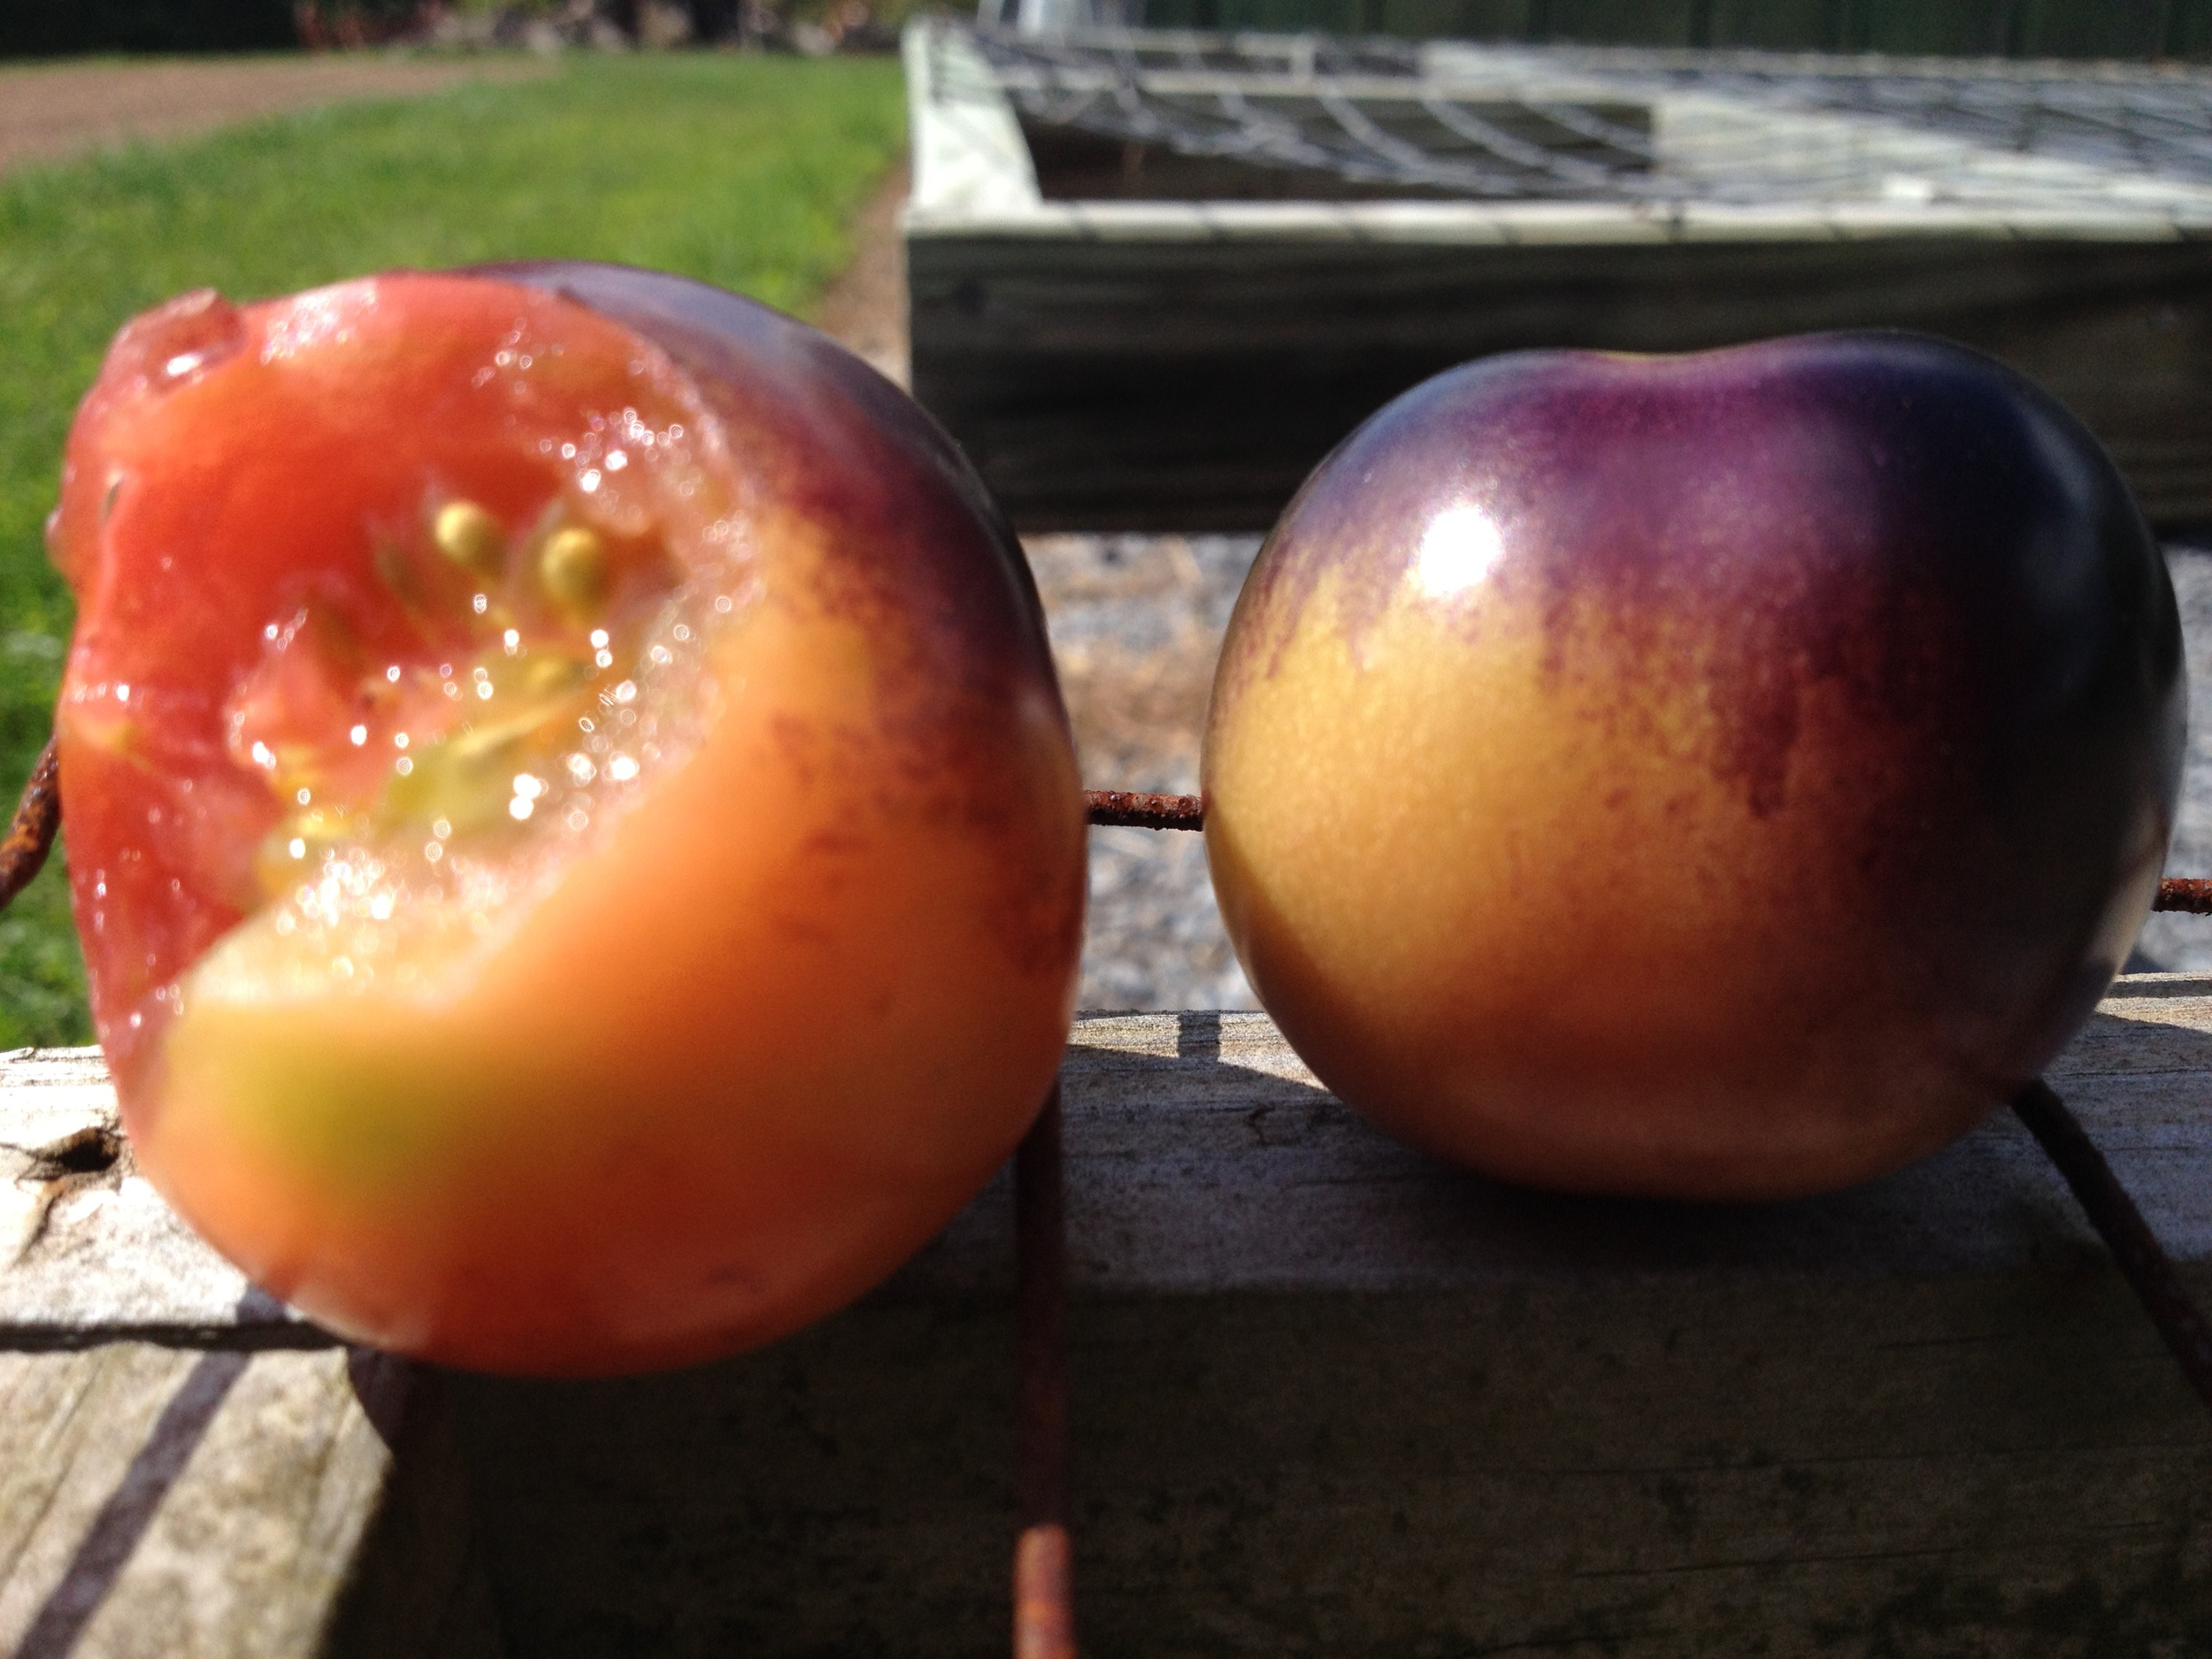 Randy grows a good tomato at Star Hollow.